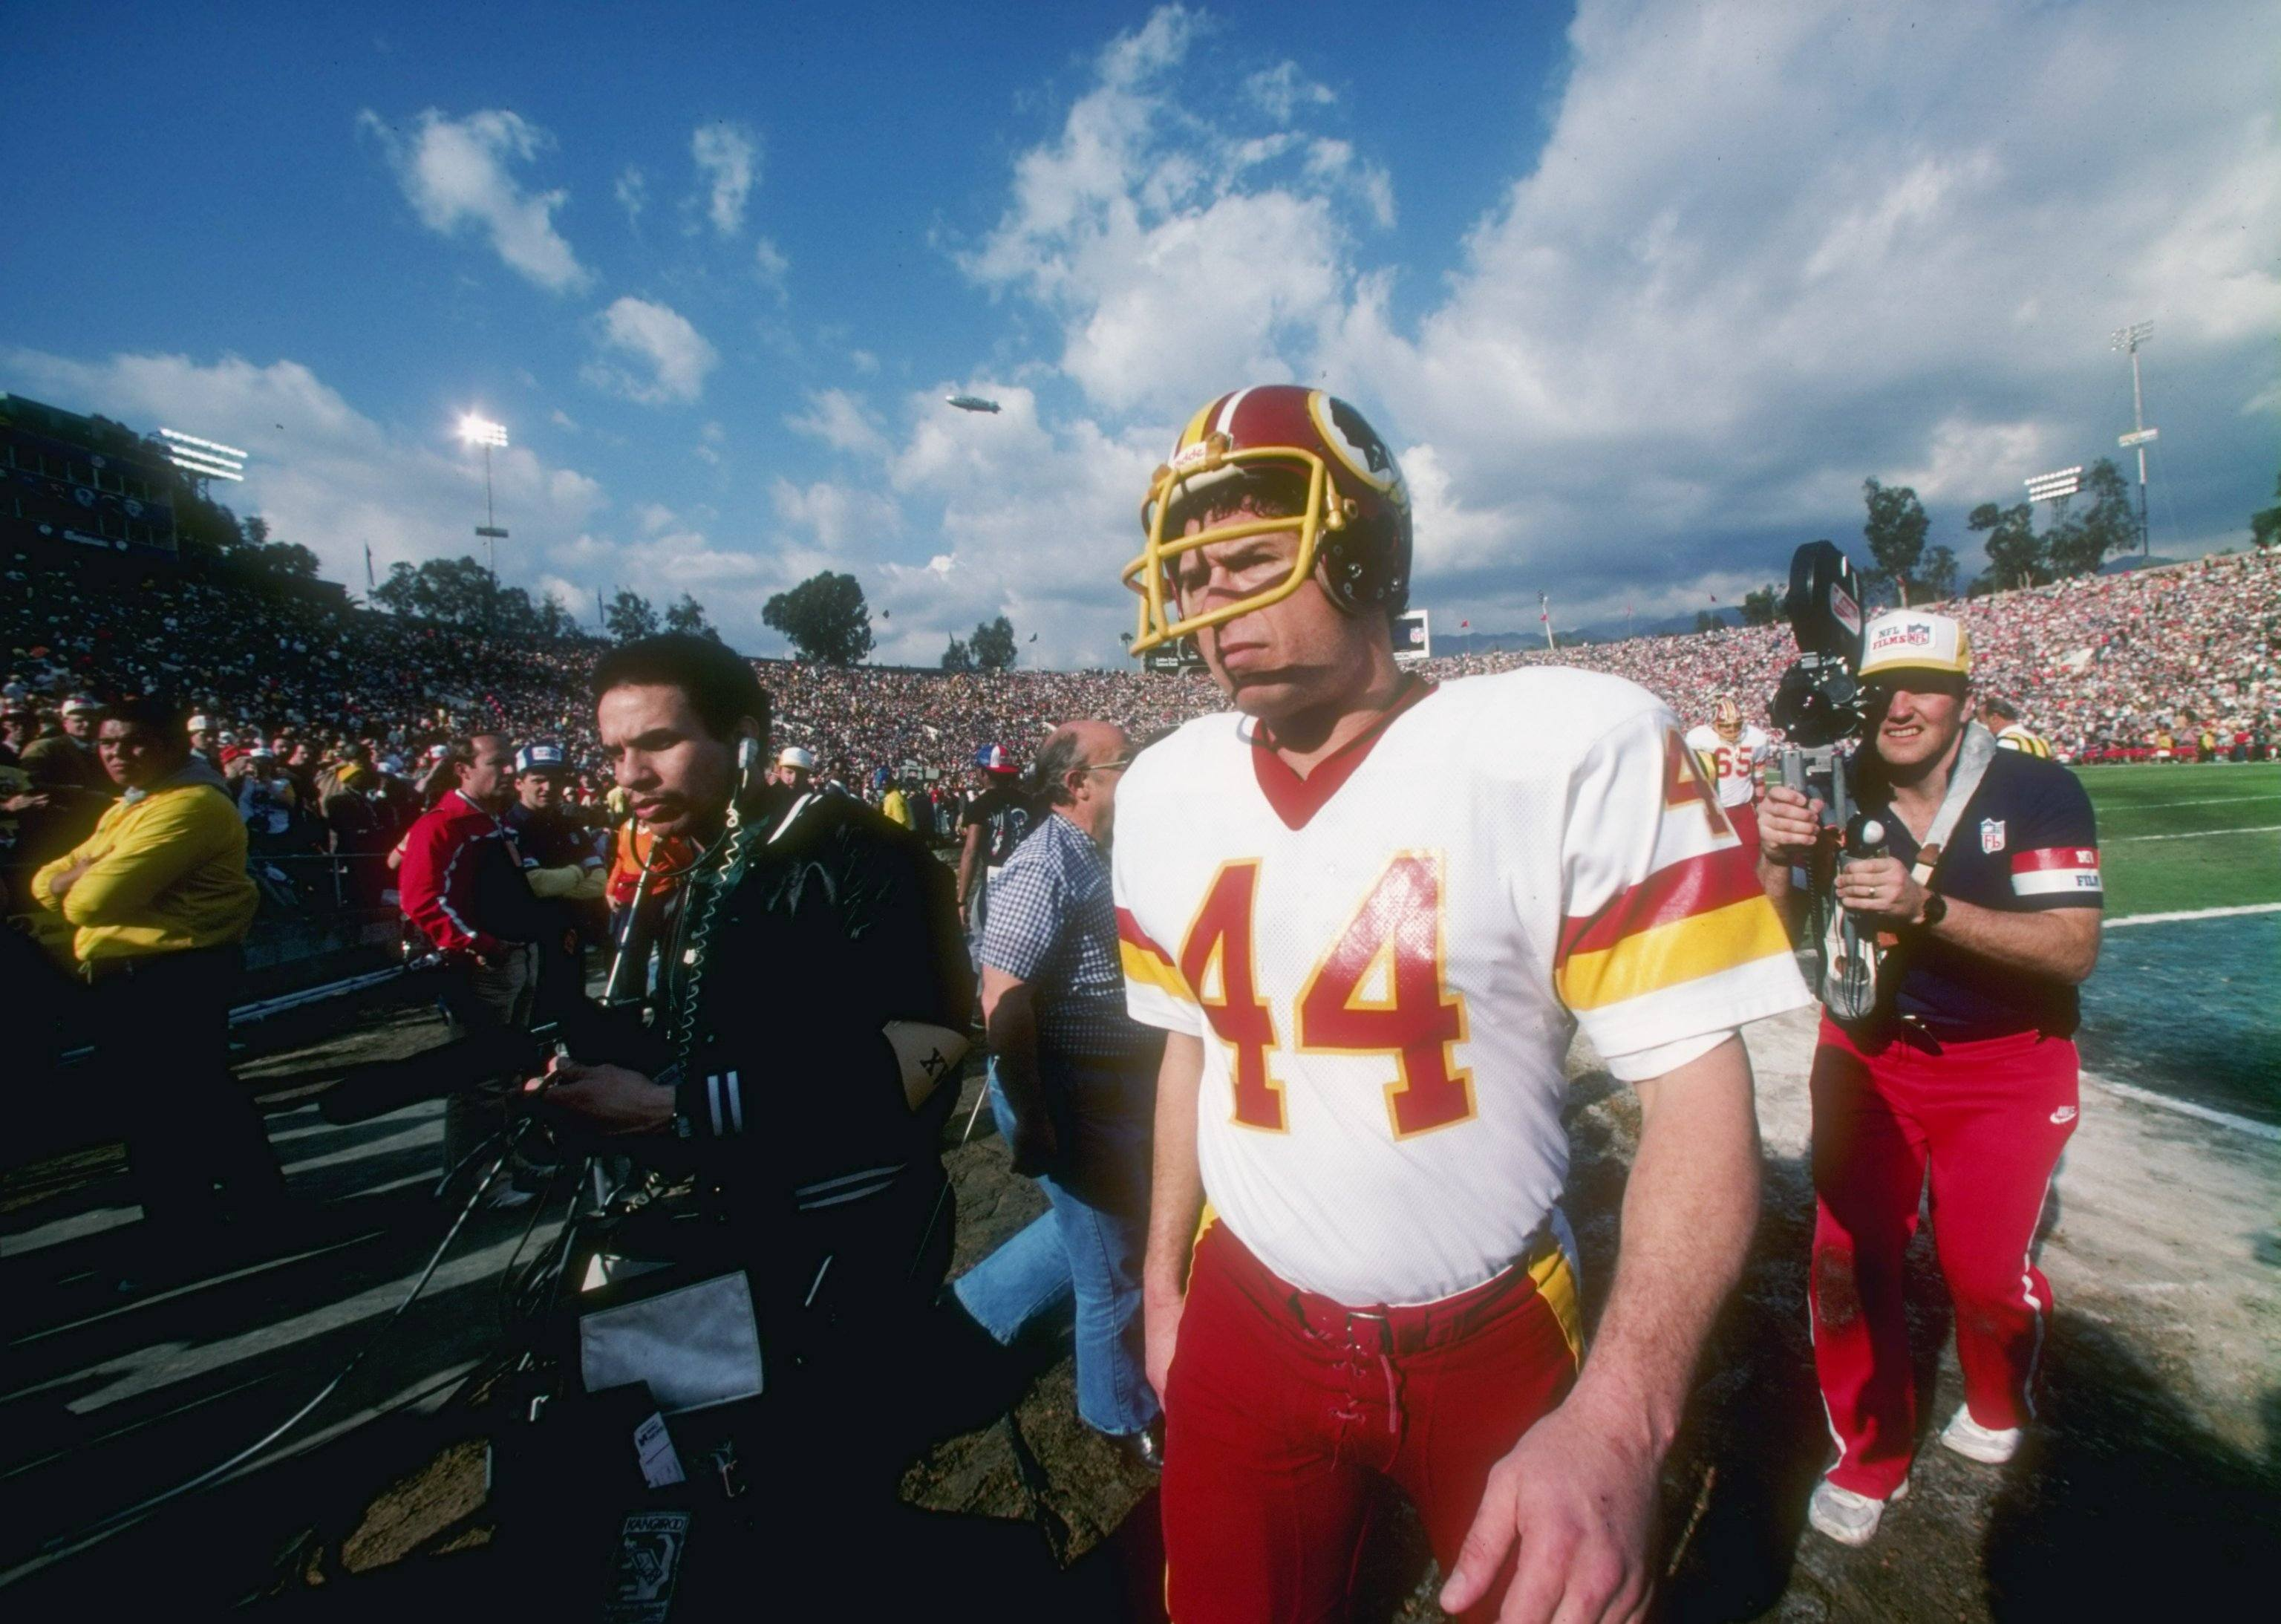 Running back John Riggins of the Washington Redskins looks on during the Super Bowl XVII against the Miami Dolphins.